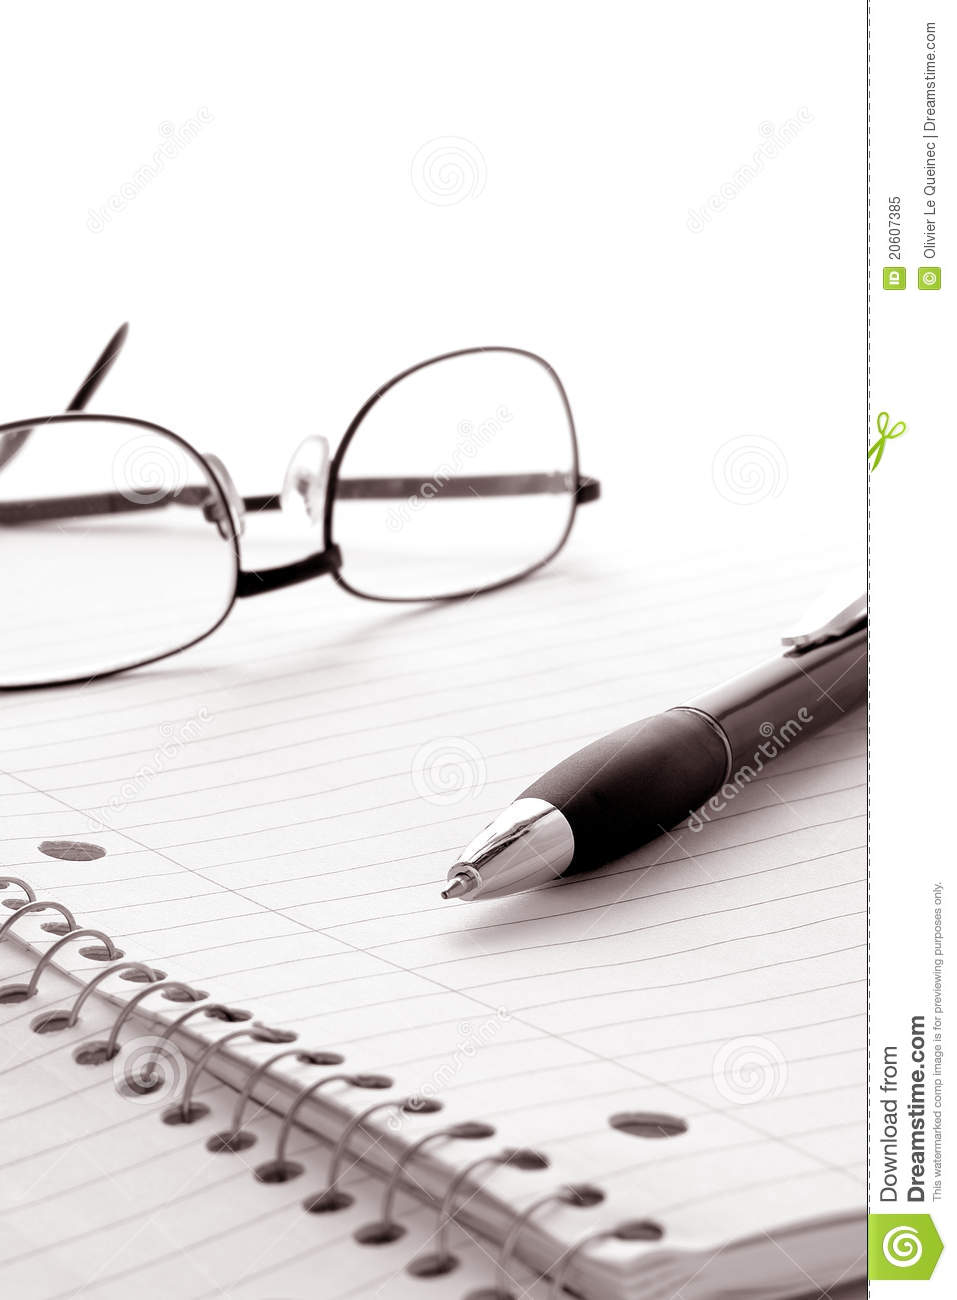 pen and glasses on notebook blank paper sheet stock image